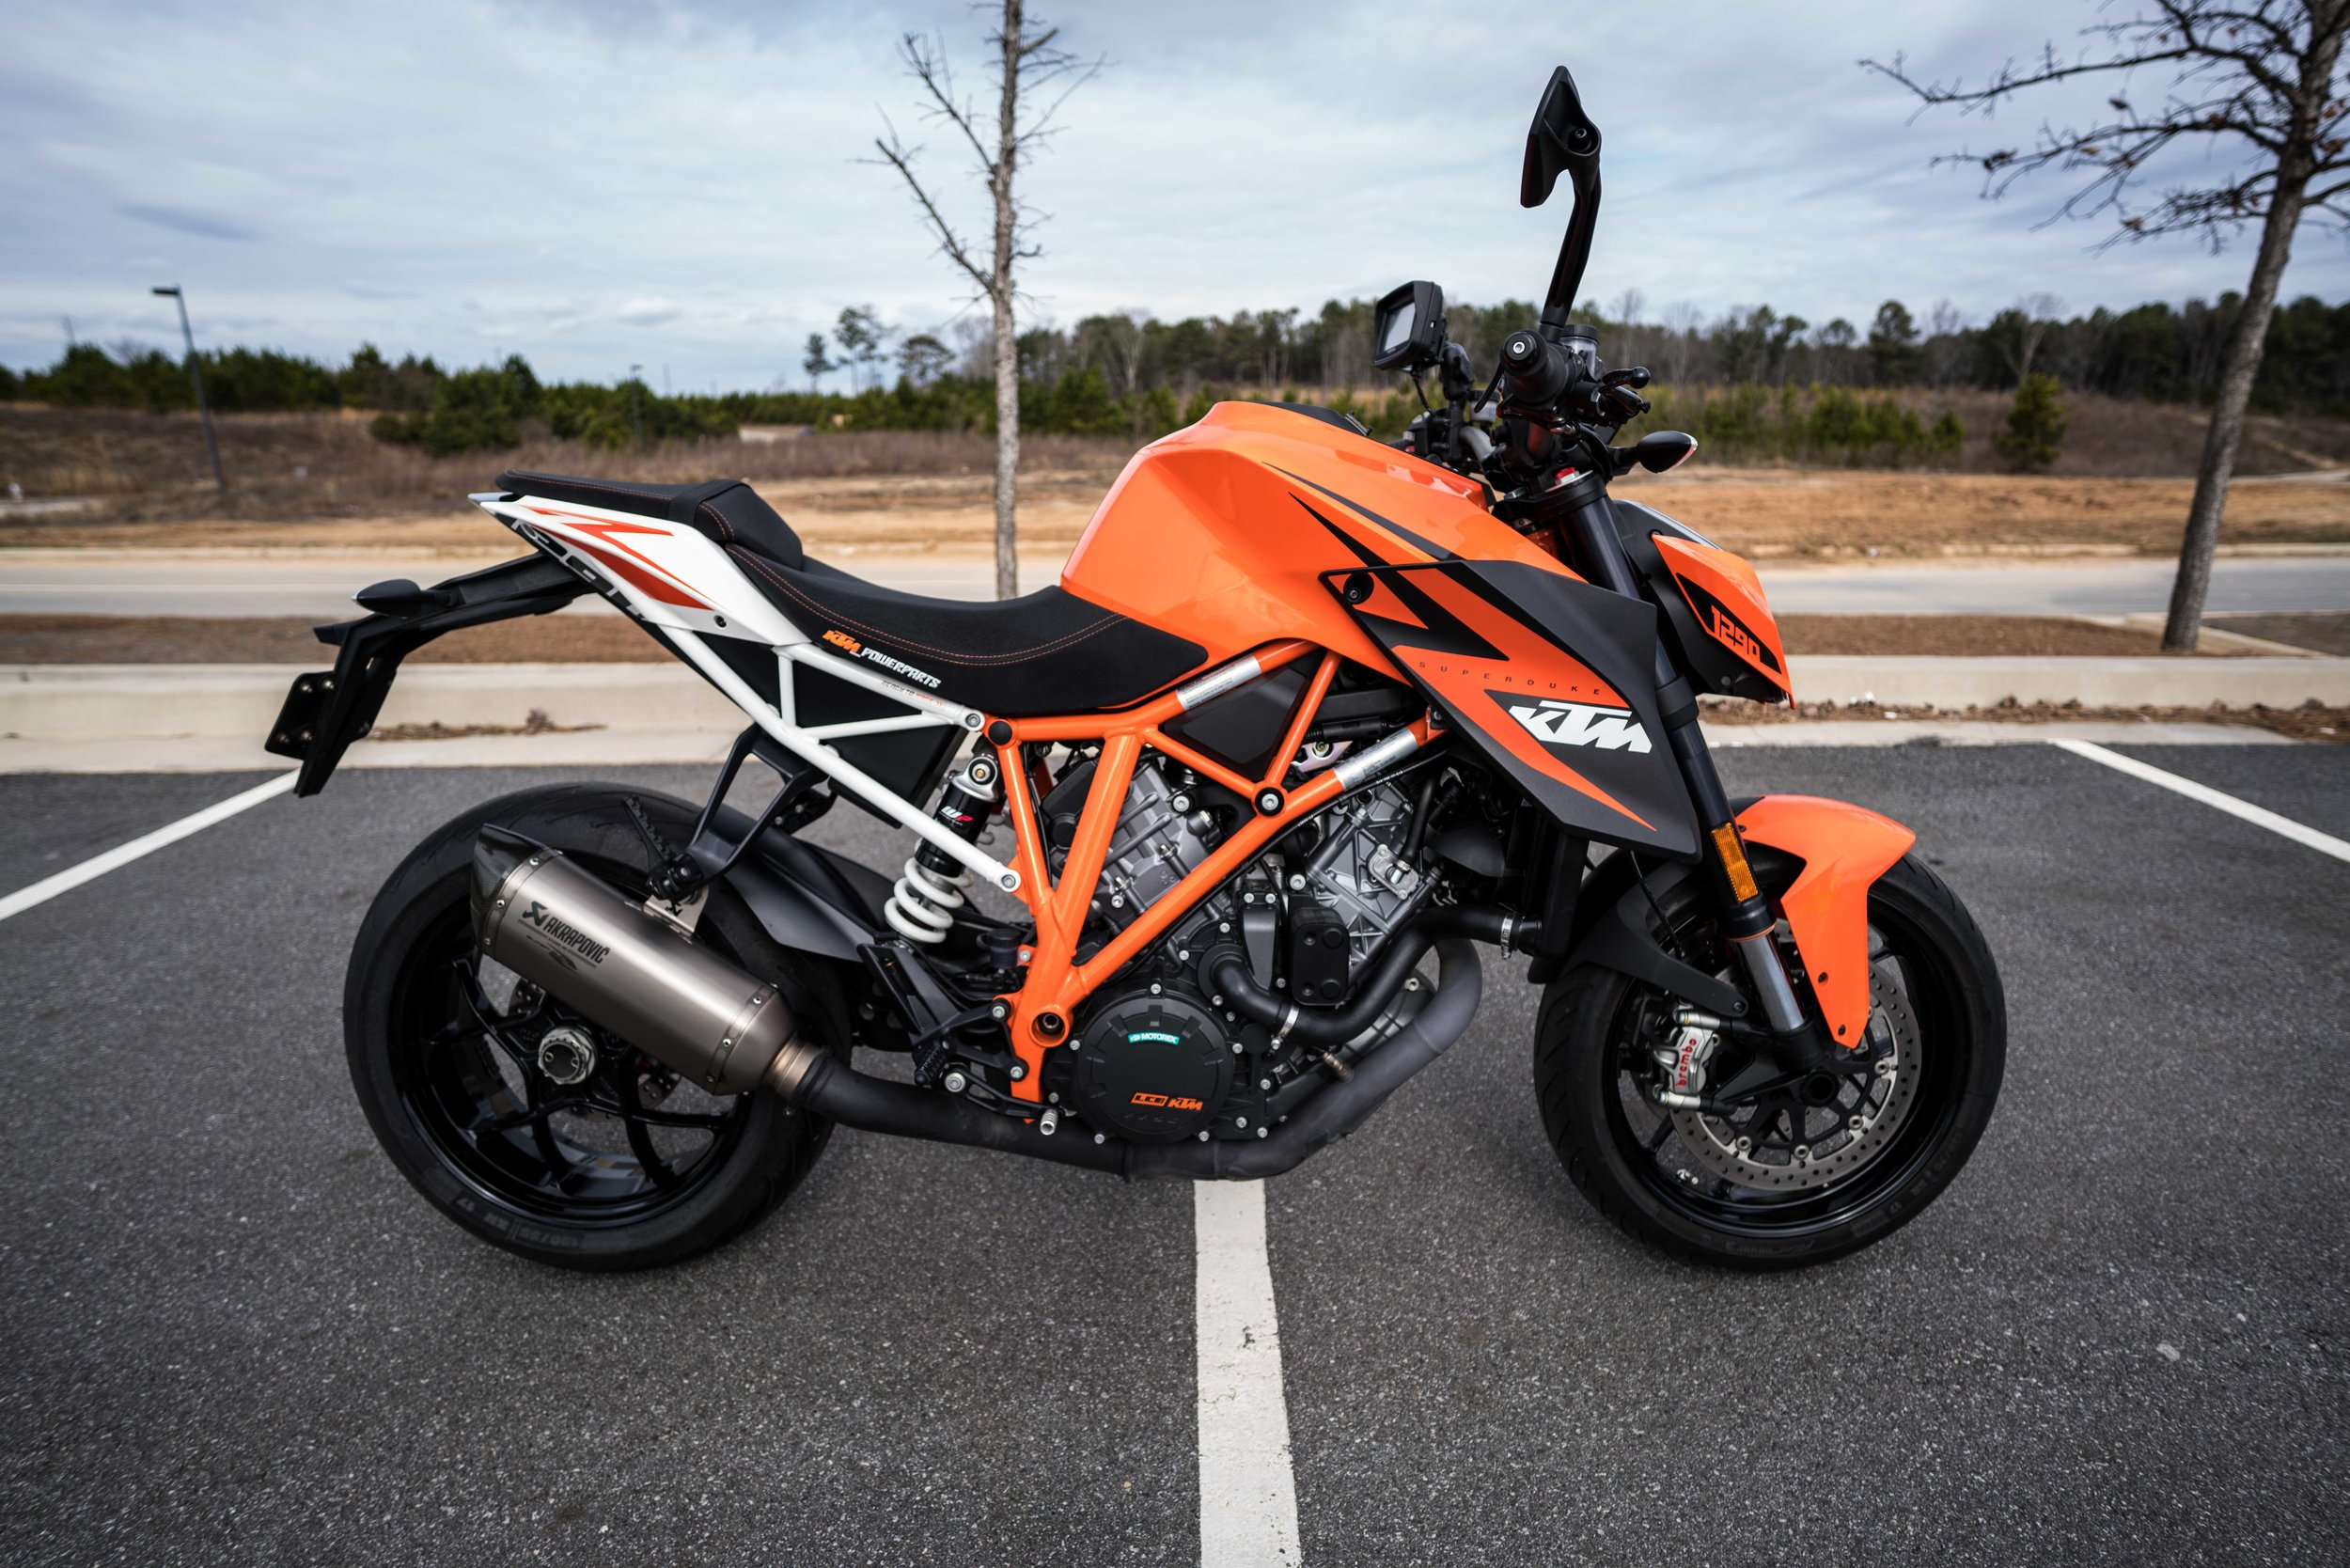 Superduke_FirstRide-1.jpg